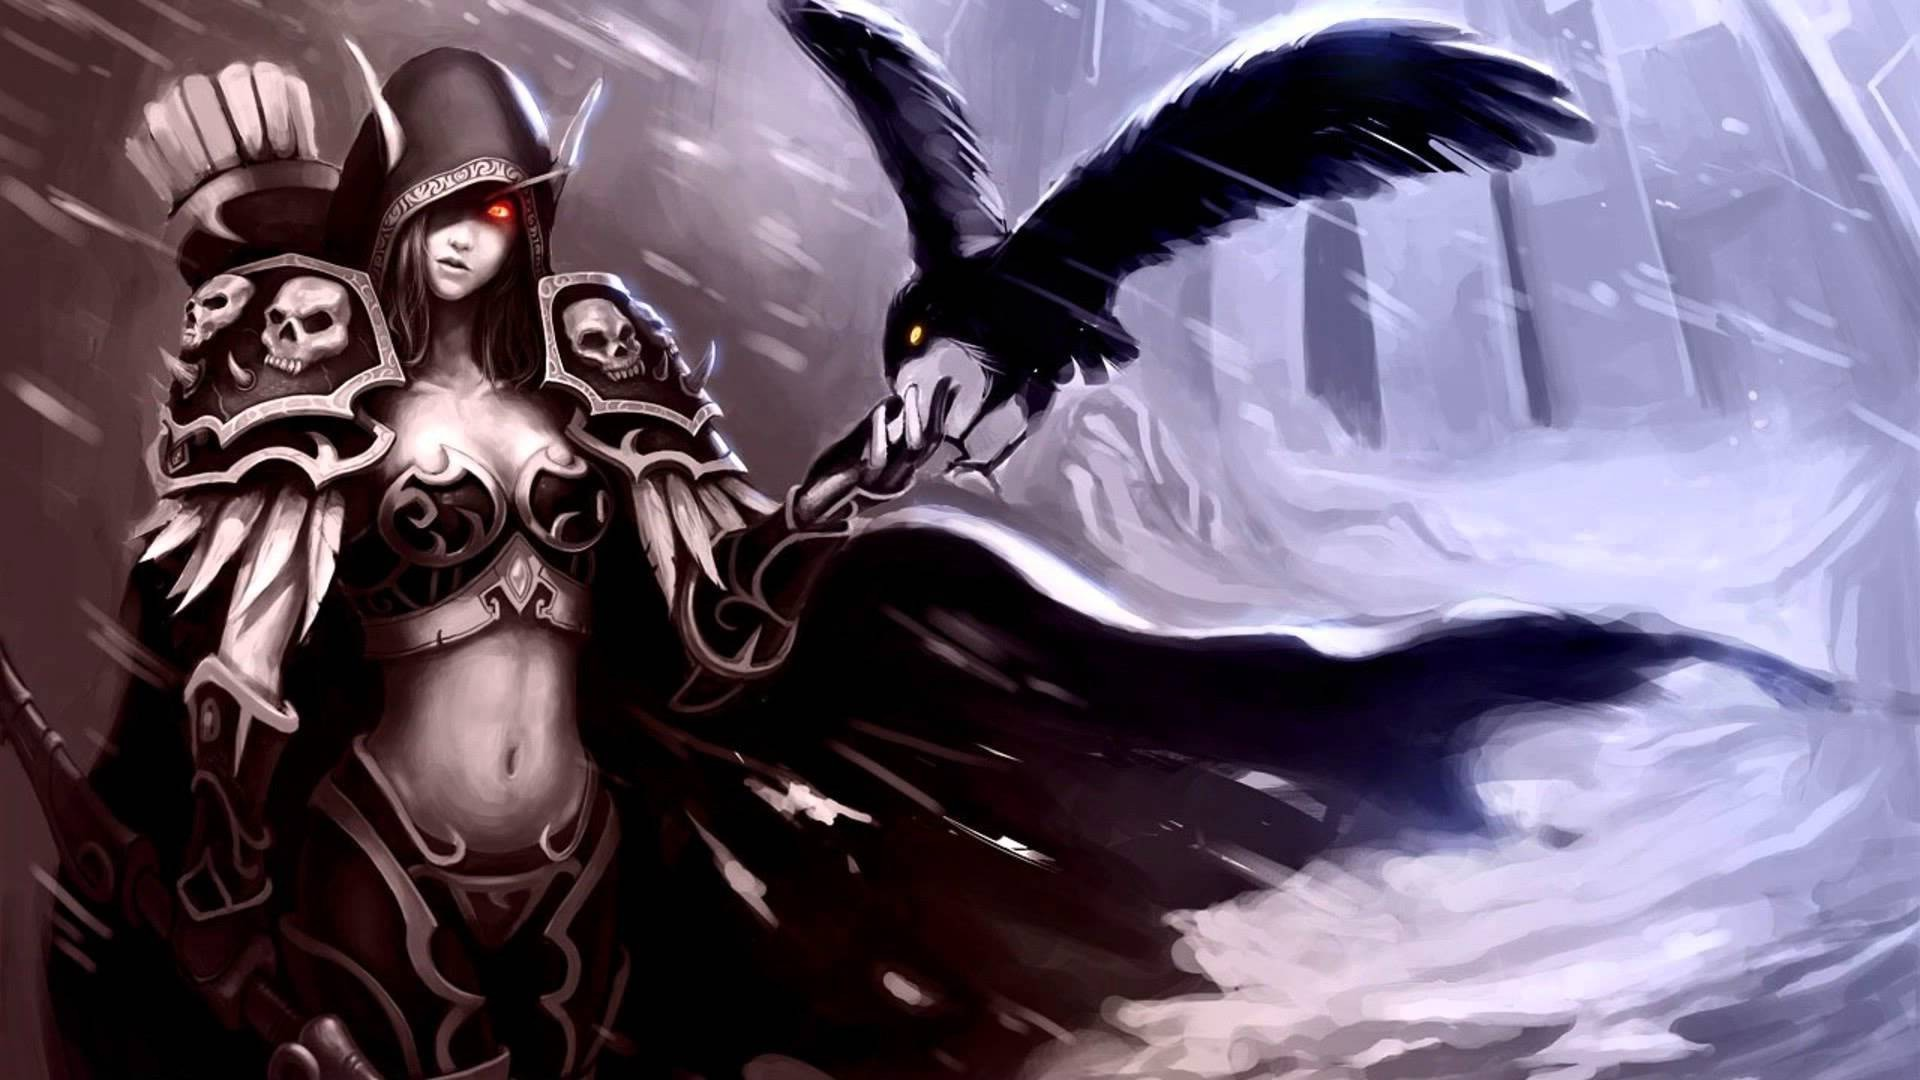 World Of Warcraft Wallpaper Sylvanas 1920x1080 Download Hd Wallpaper Wallpapertip